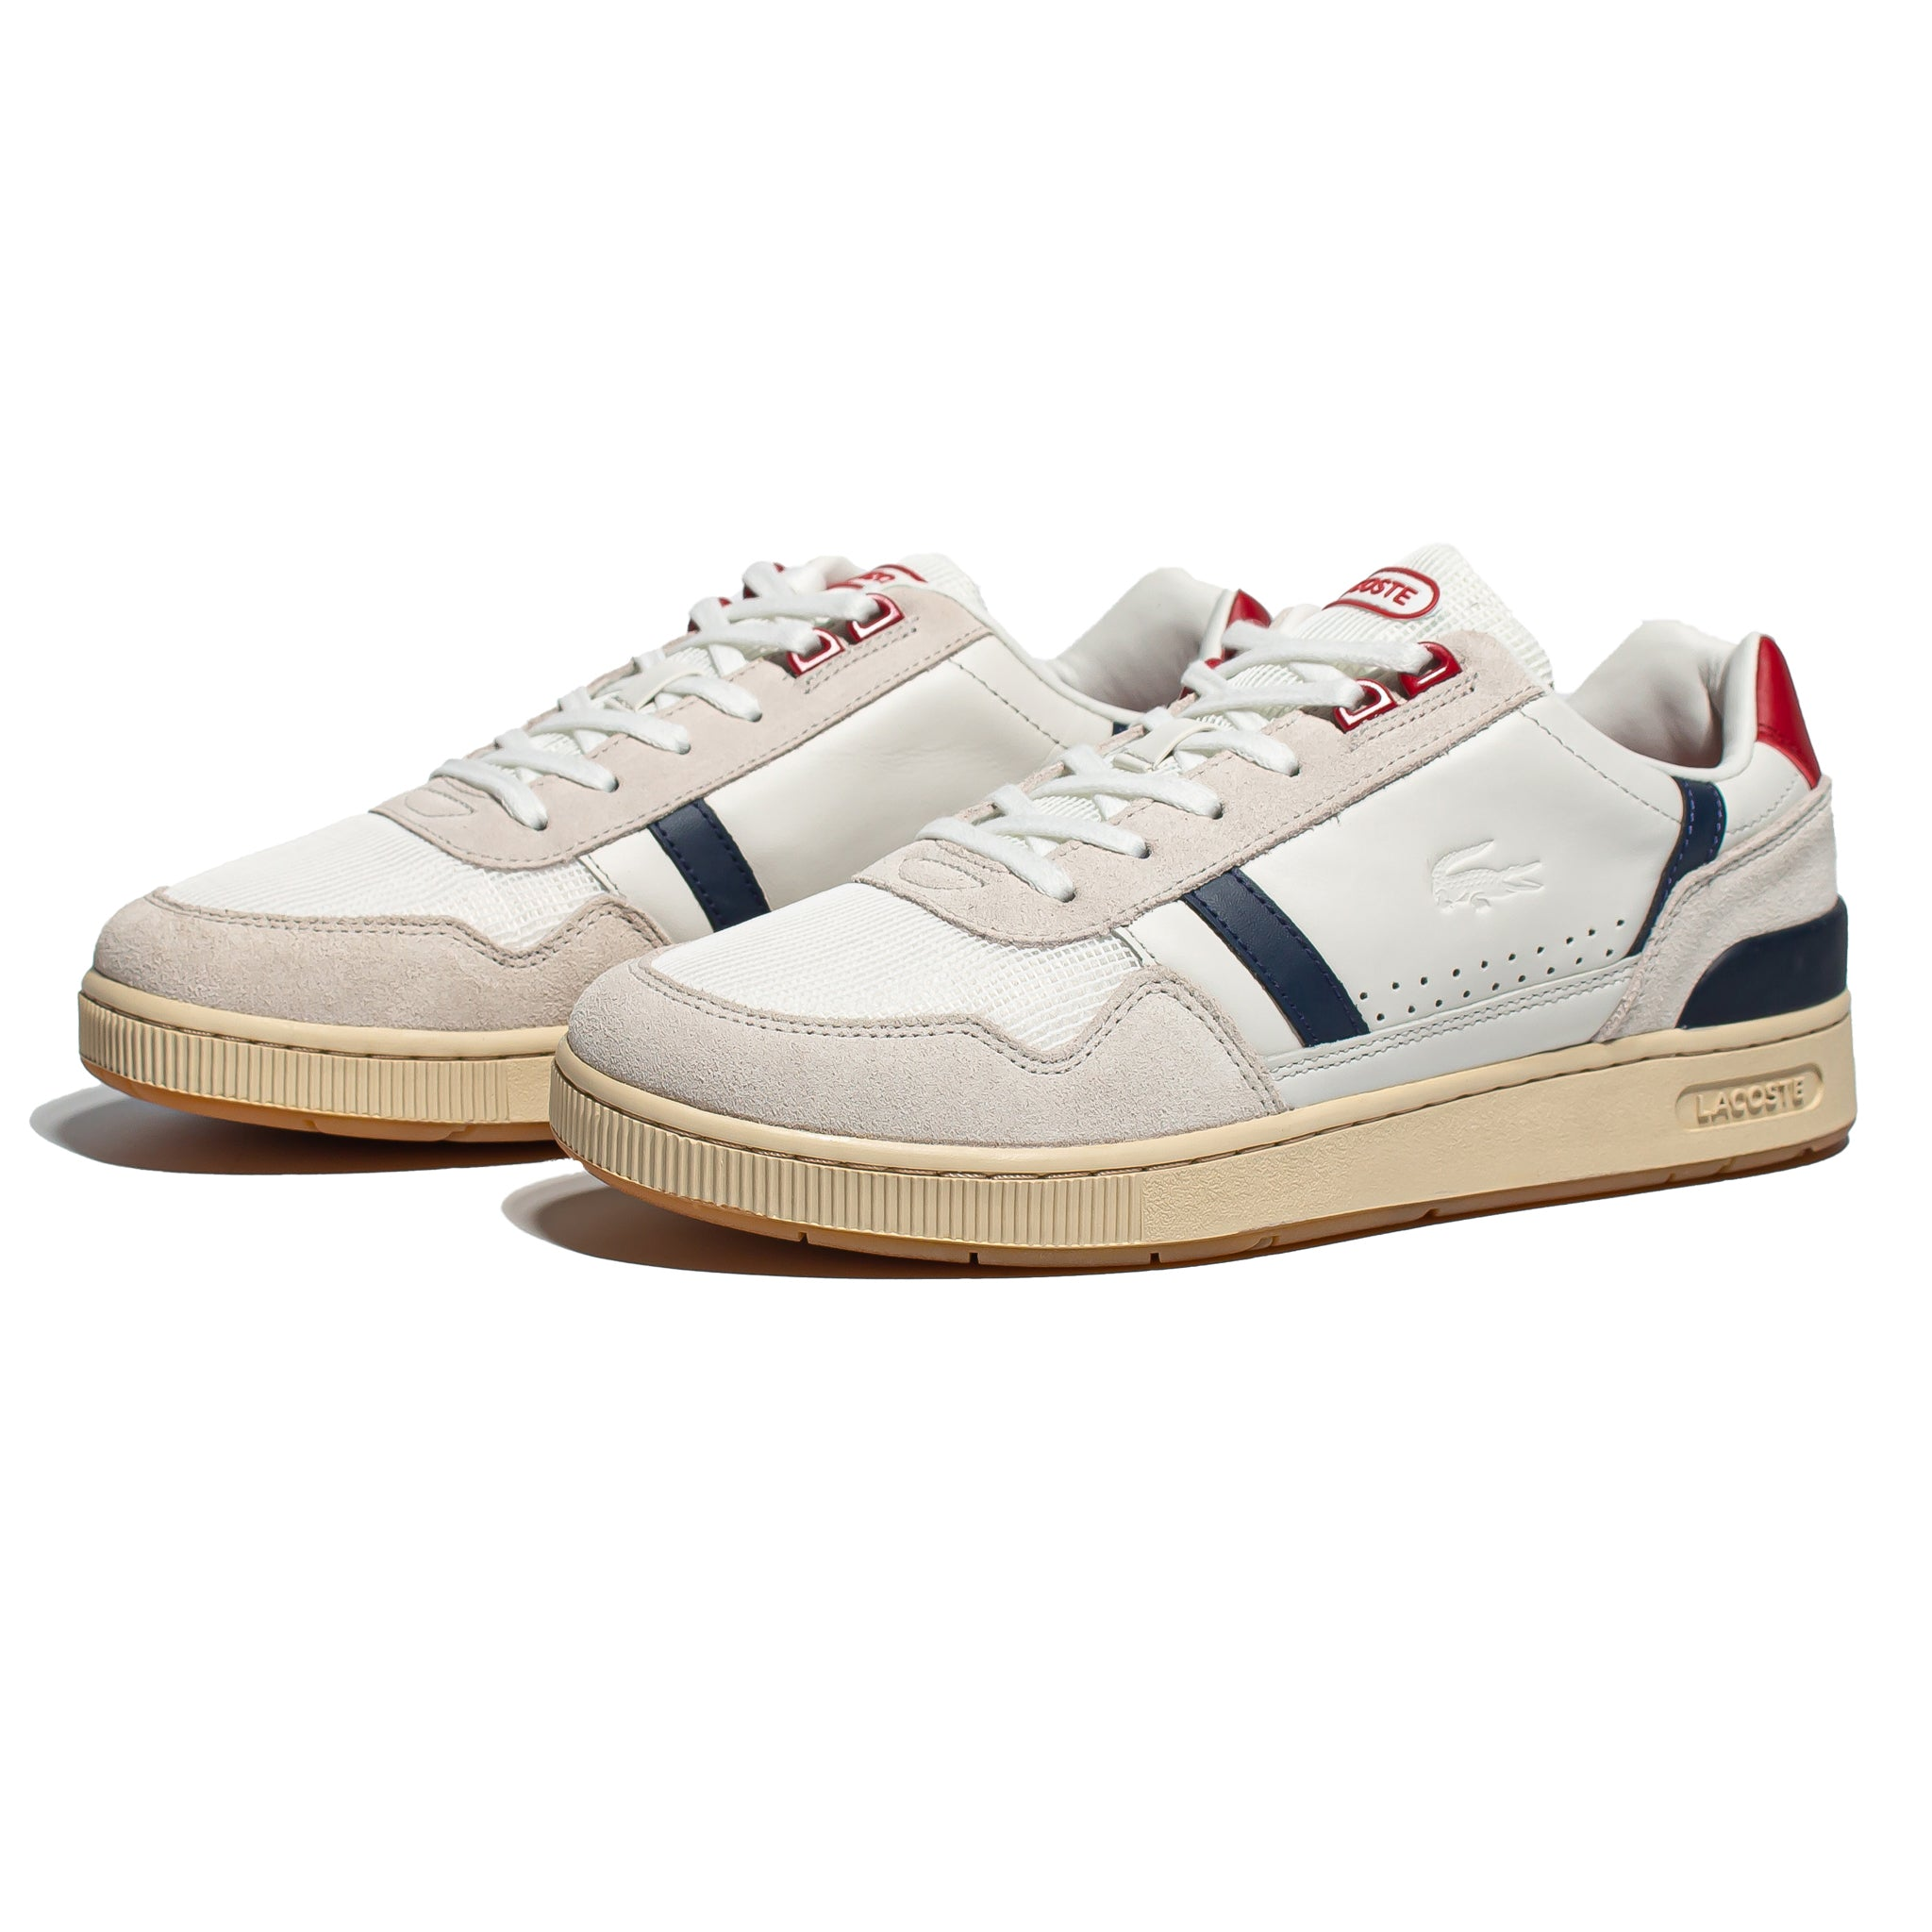 Lacoste T-Clip 120 Off White/Navy/Red